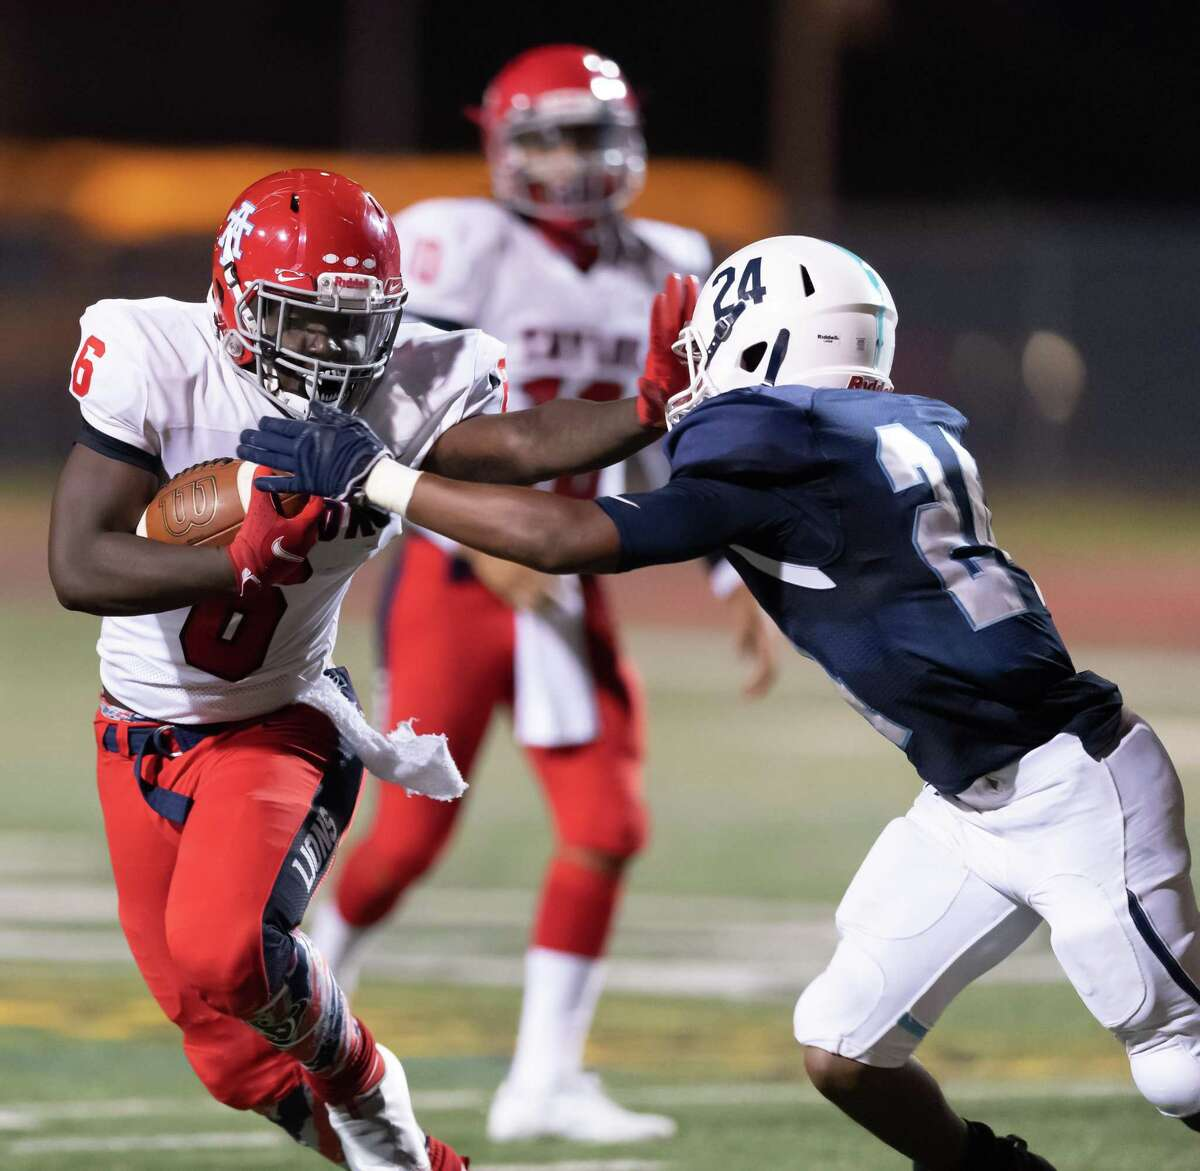 Alonzo Hines (6) of the Alief Taylor Lions stiff arms Kyle Brown (24) of the Alief Elsik Rams in the first half during a High School football game on Friday, October 16, 2020 at Crump Stadium in Houston Texas.